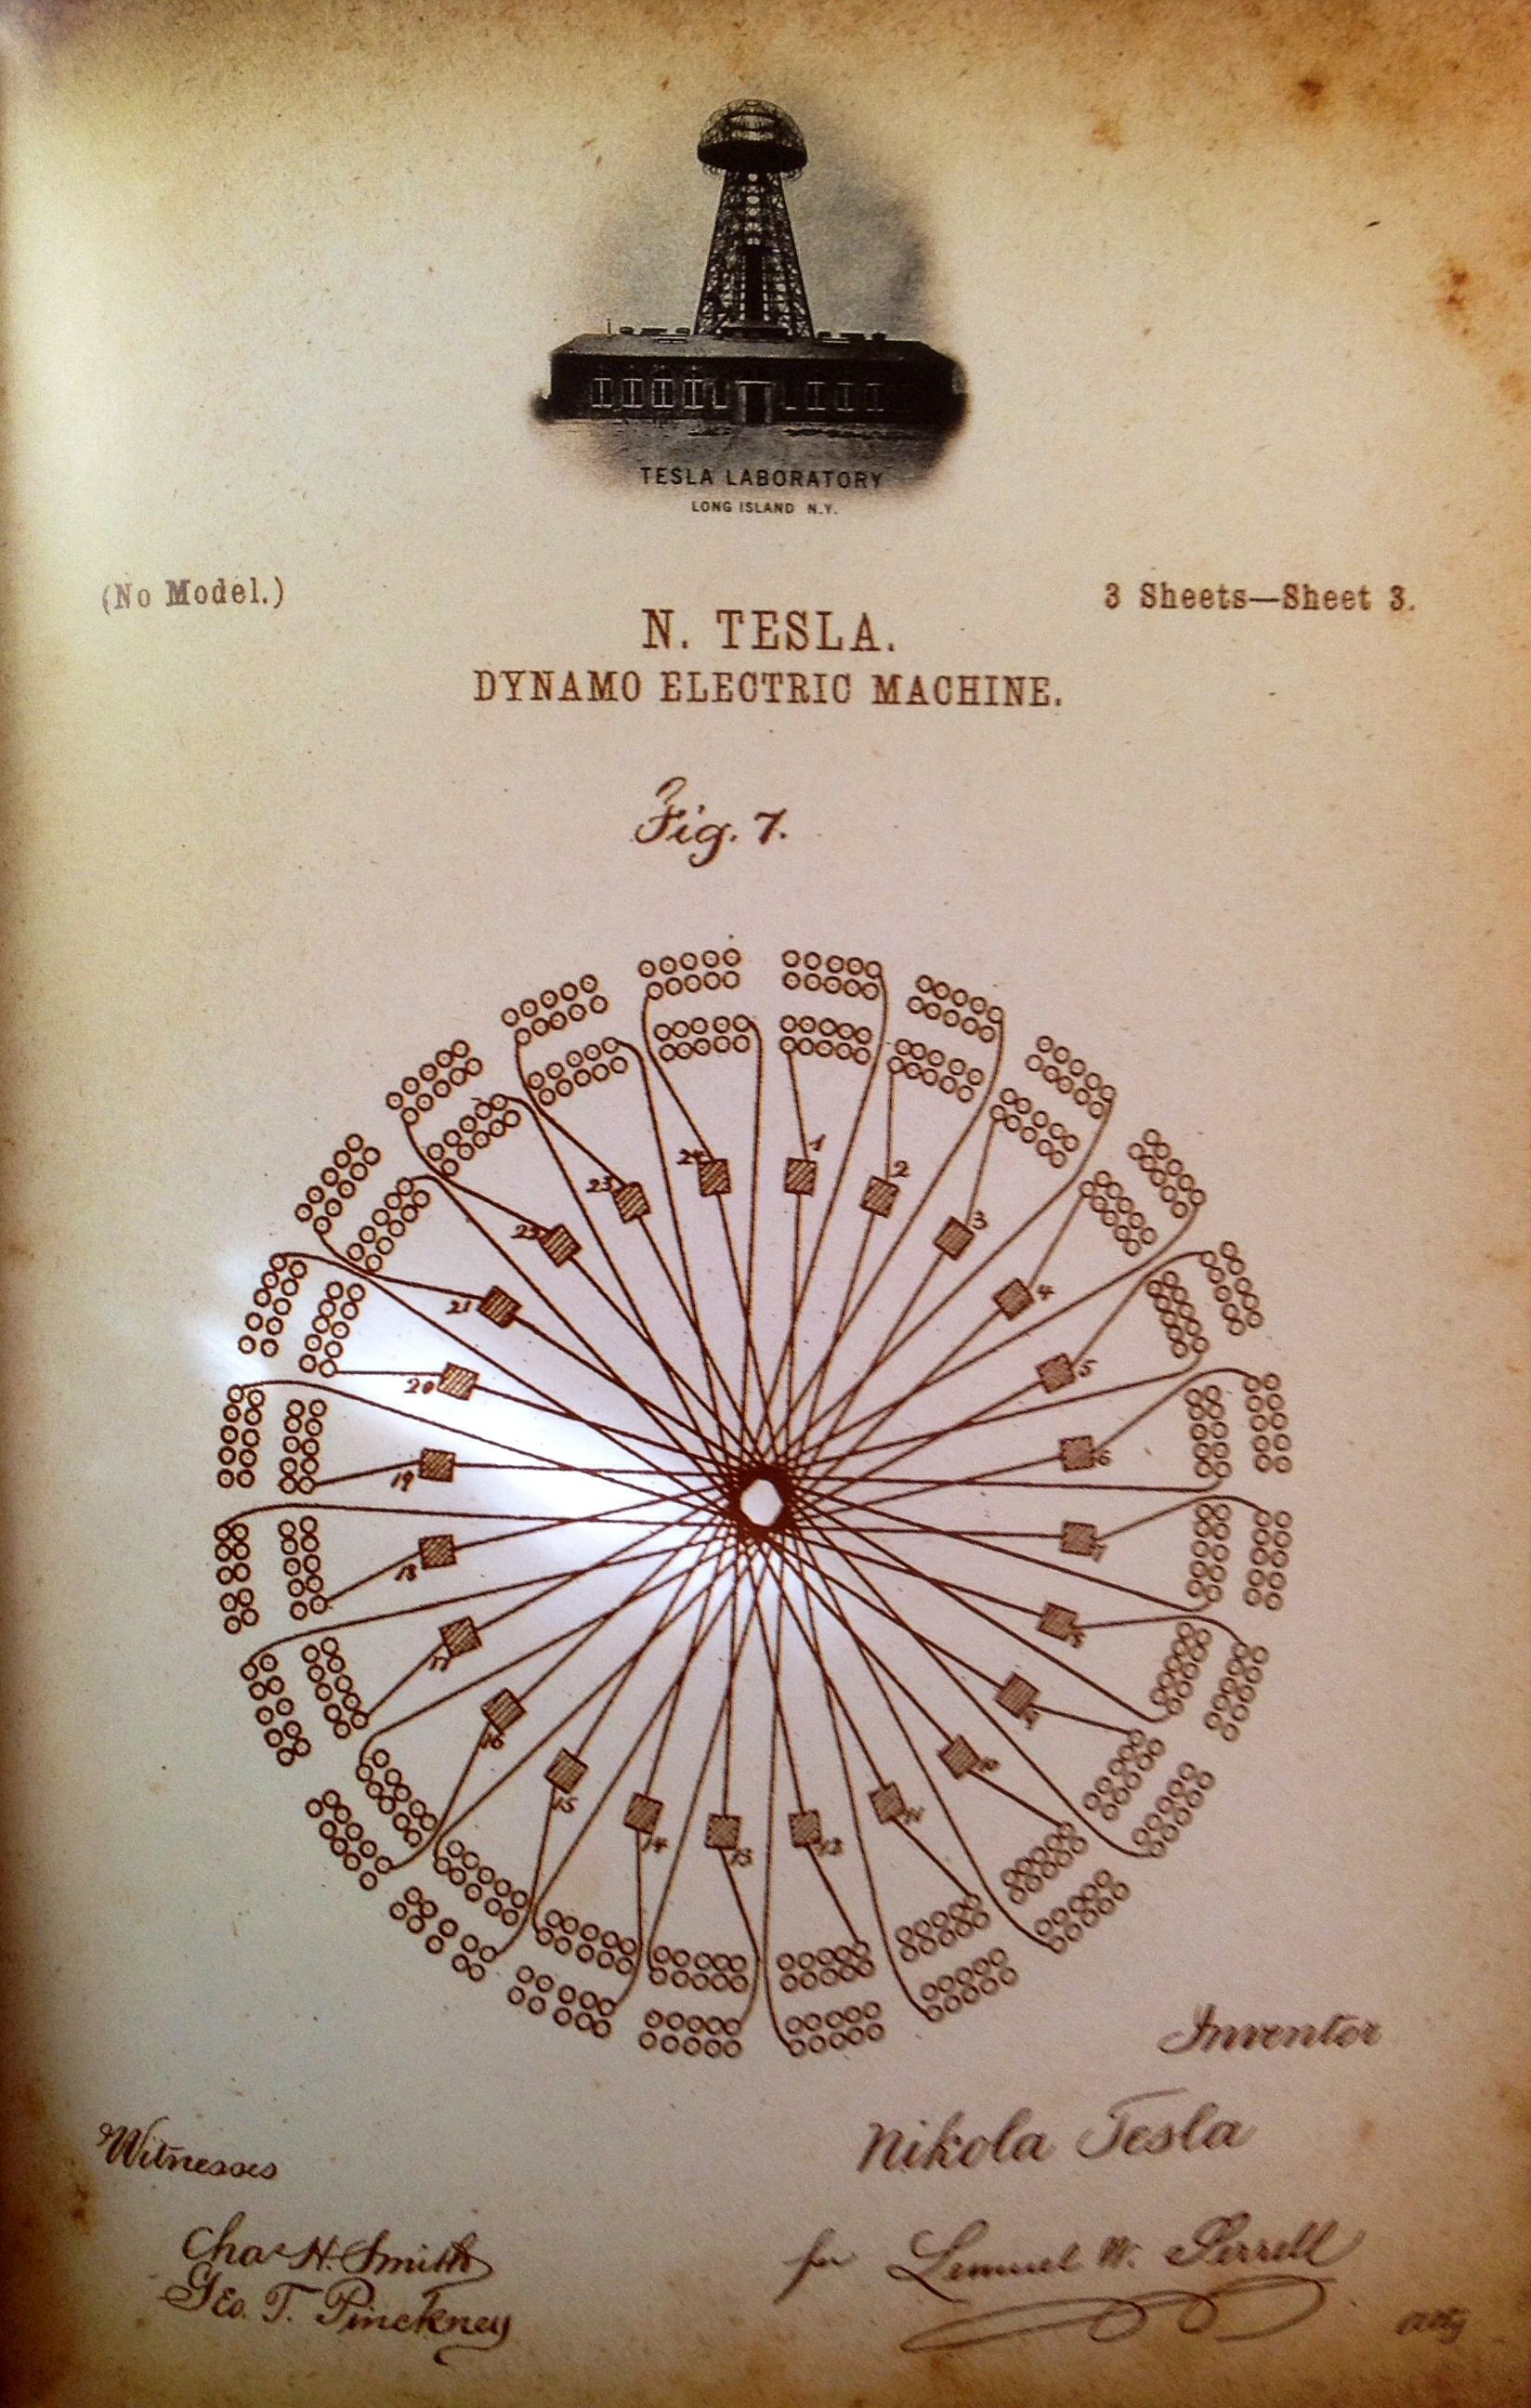 dynamo electric machine tesla electric tesla and n tesla dynamo electric machine